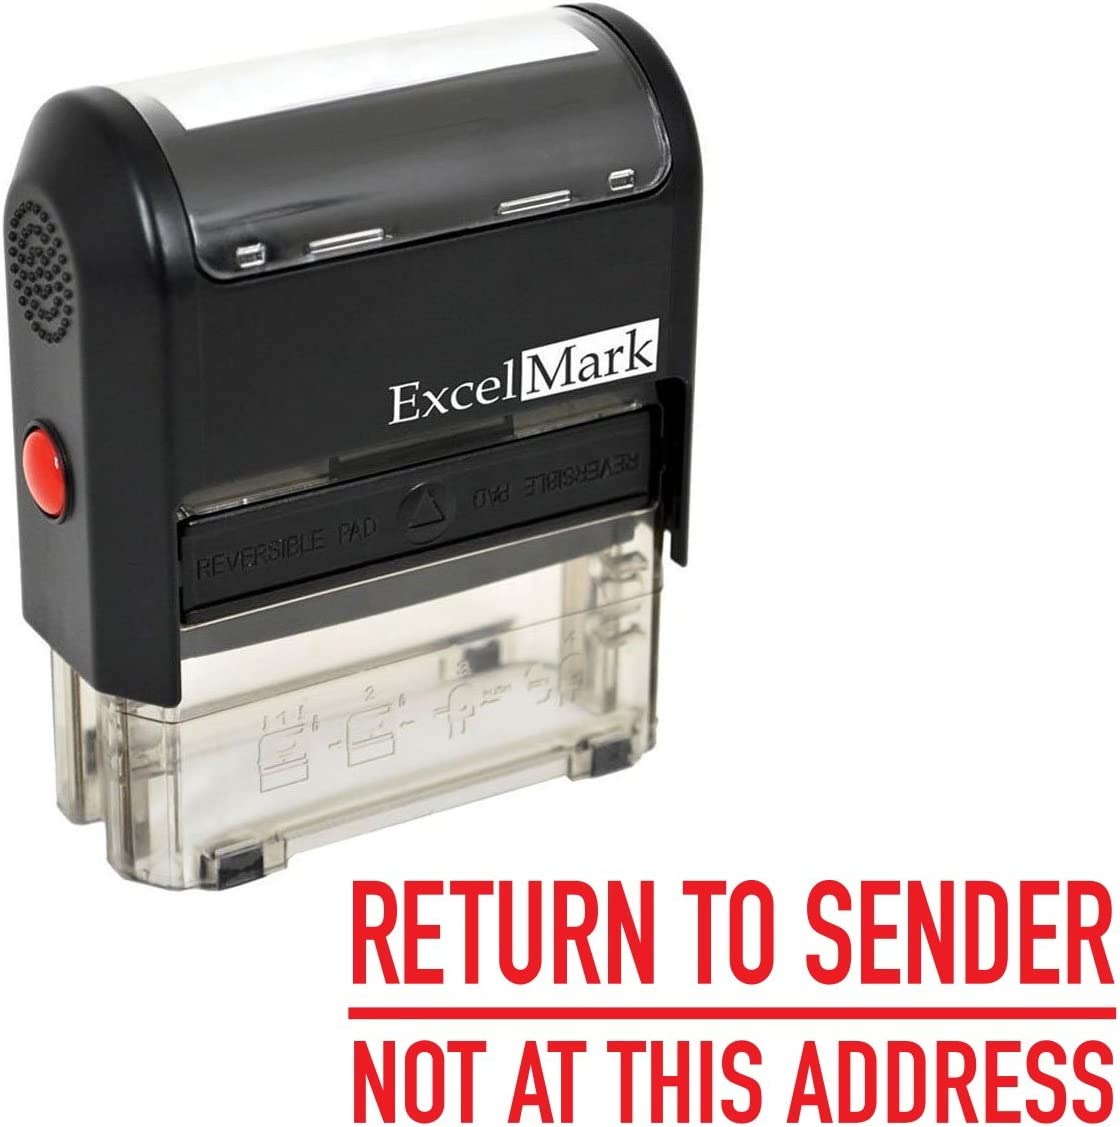 ExcelMark A2359 Self-Inking Rubber Stamp - Return to Sender Not at This Address